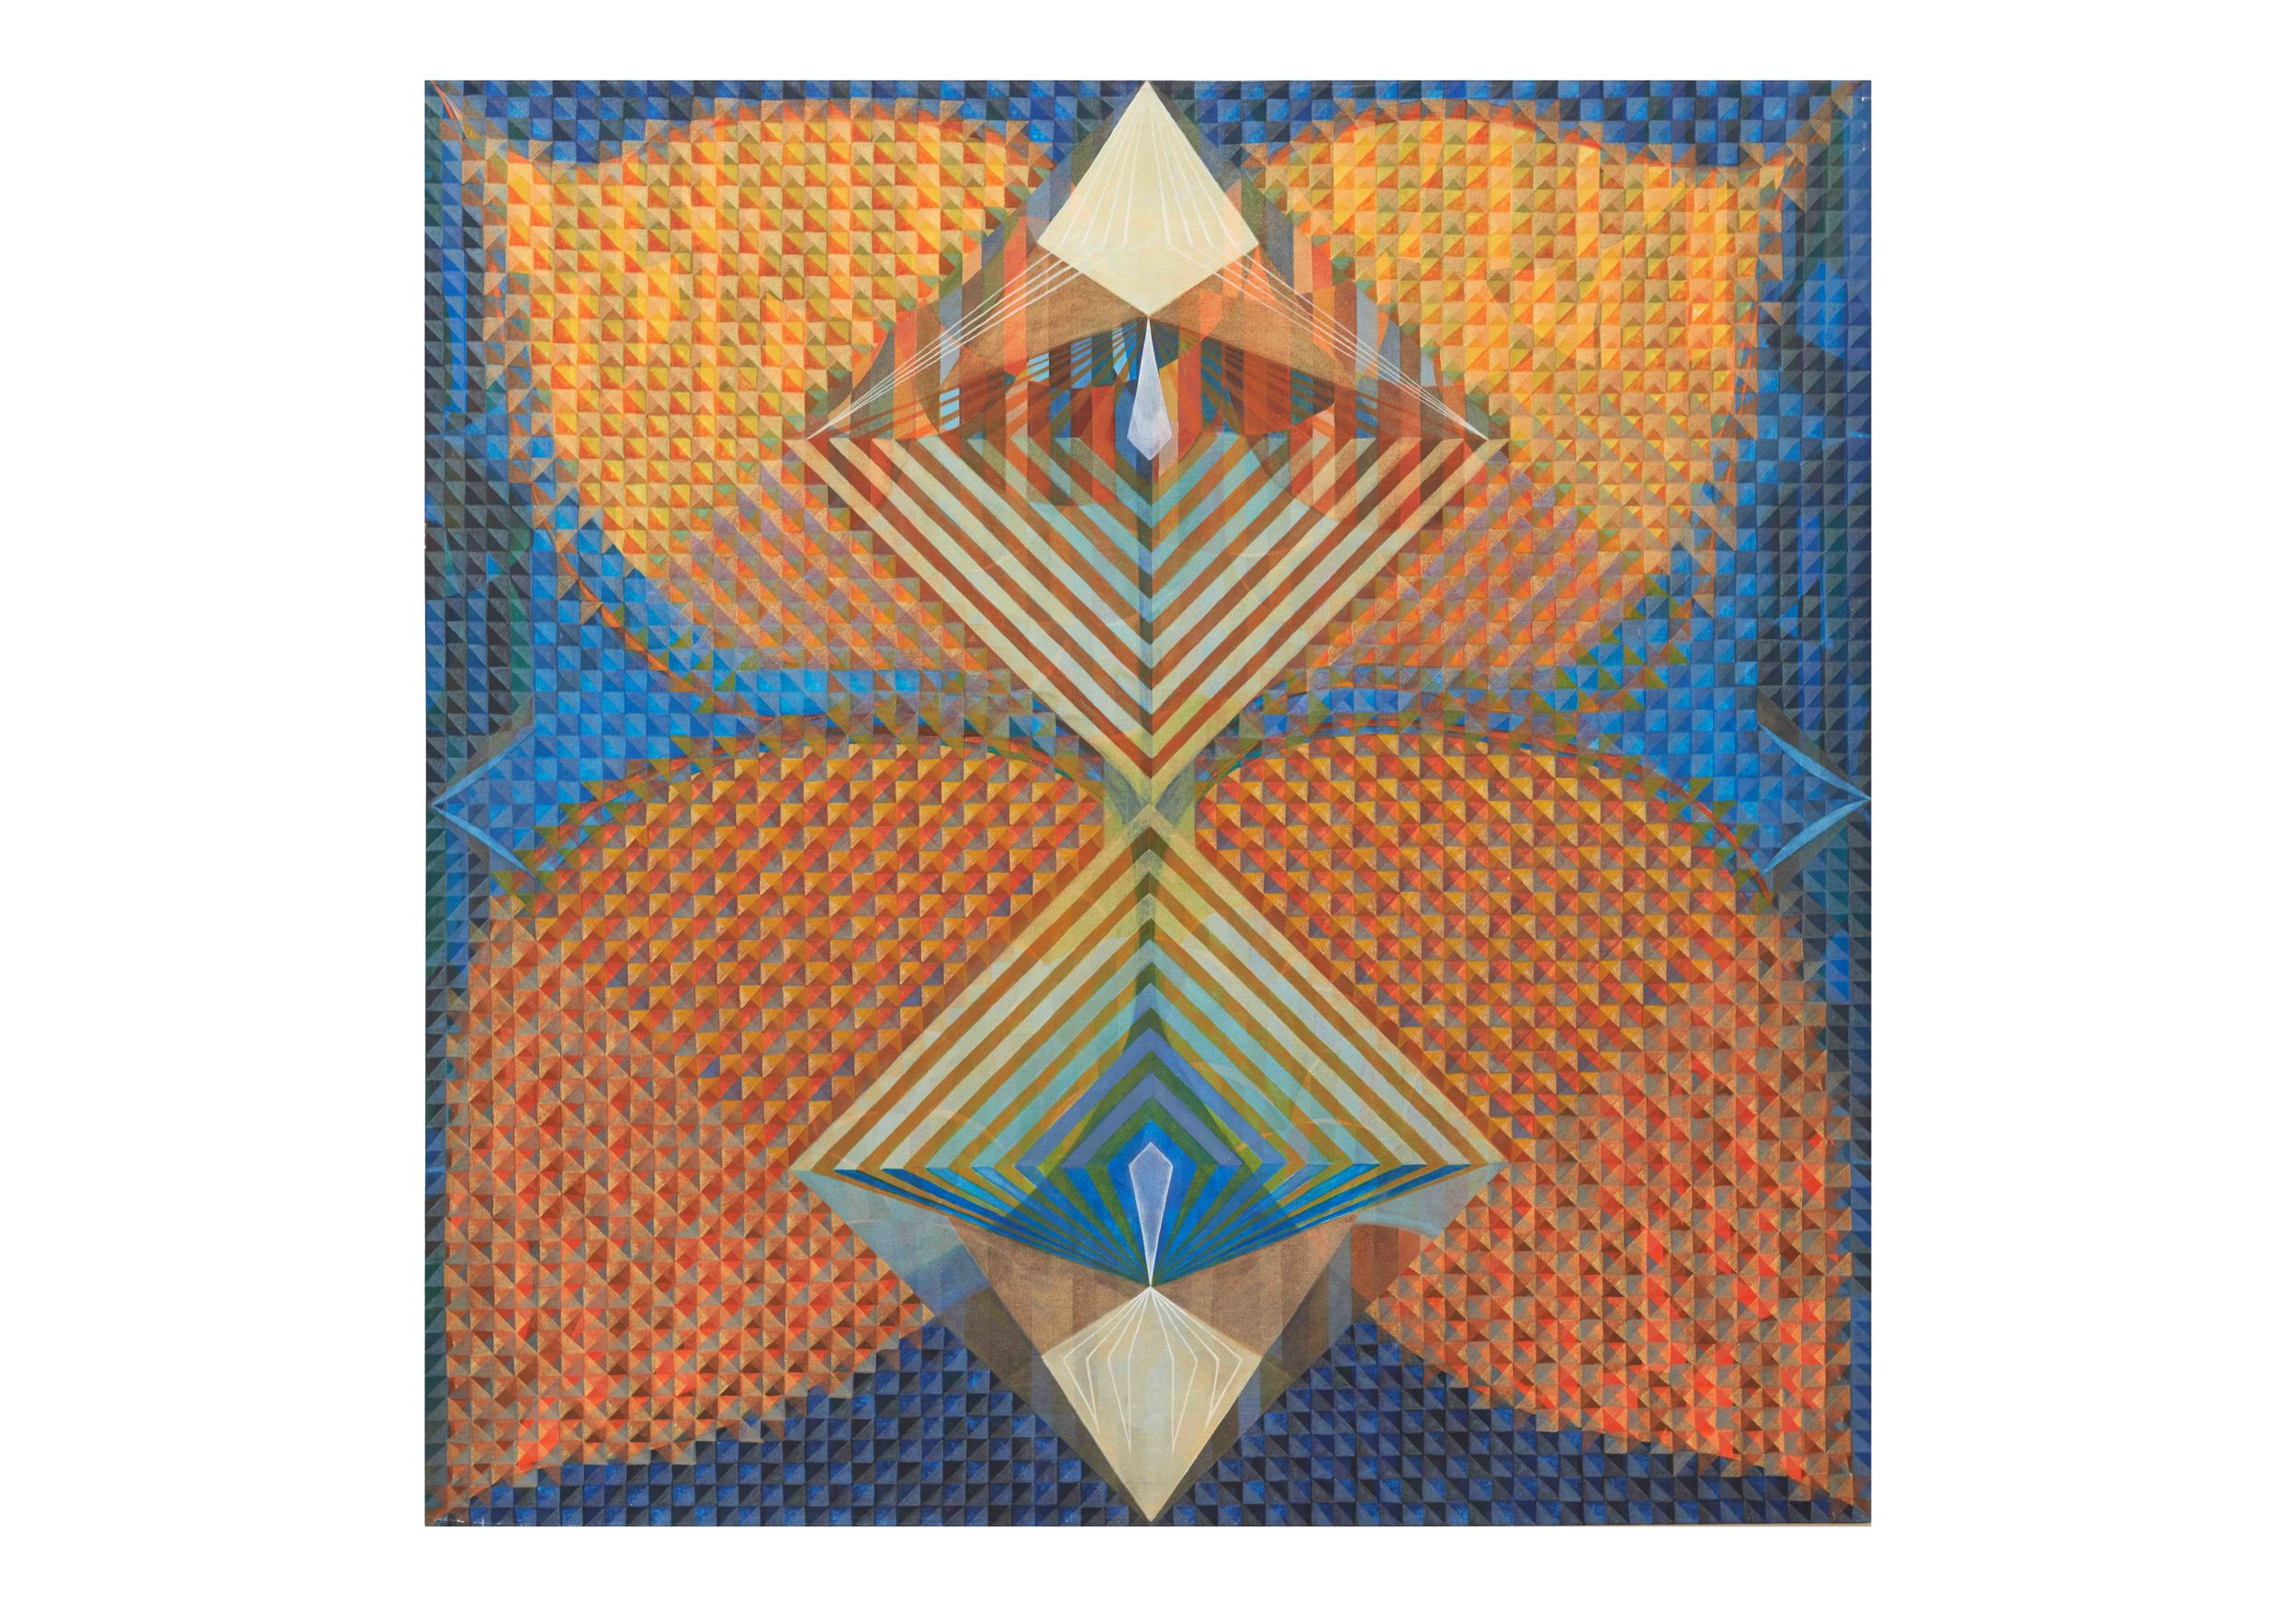 12. Butterfly Jewel, 1975. New York. (Image size 60cm wide x 60cm tall) £500)